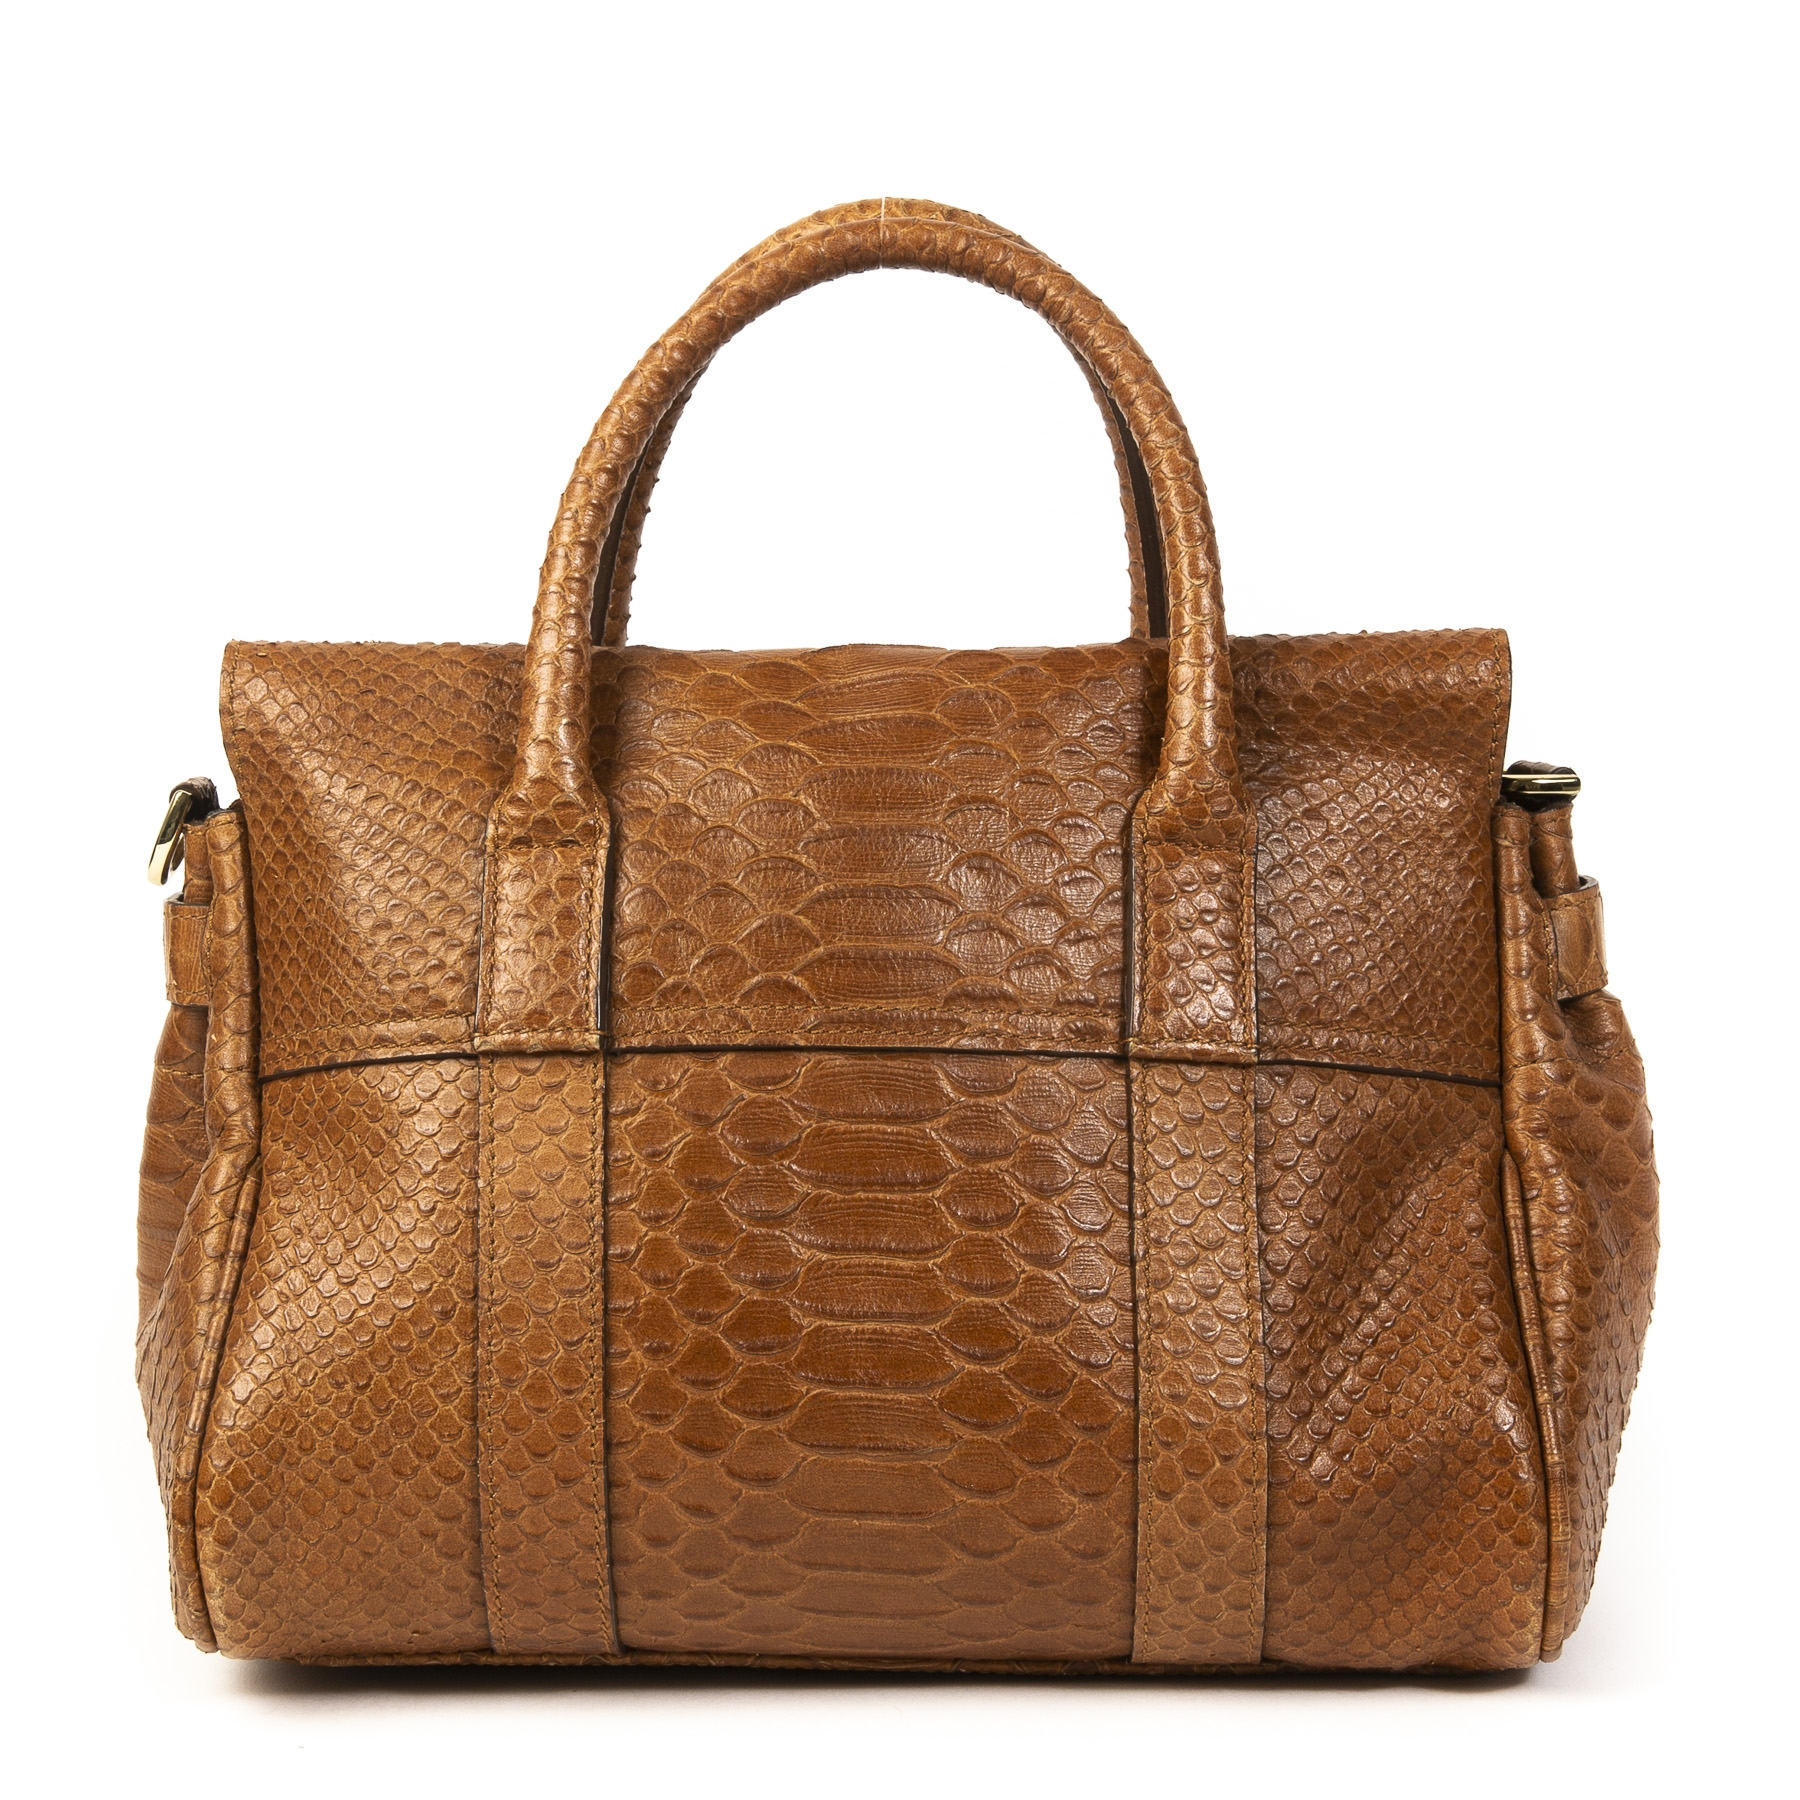 Buy this authentic second-hand vintage Mulberry Bayswater Python Mini Bag at online webshop LabelLOV